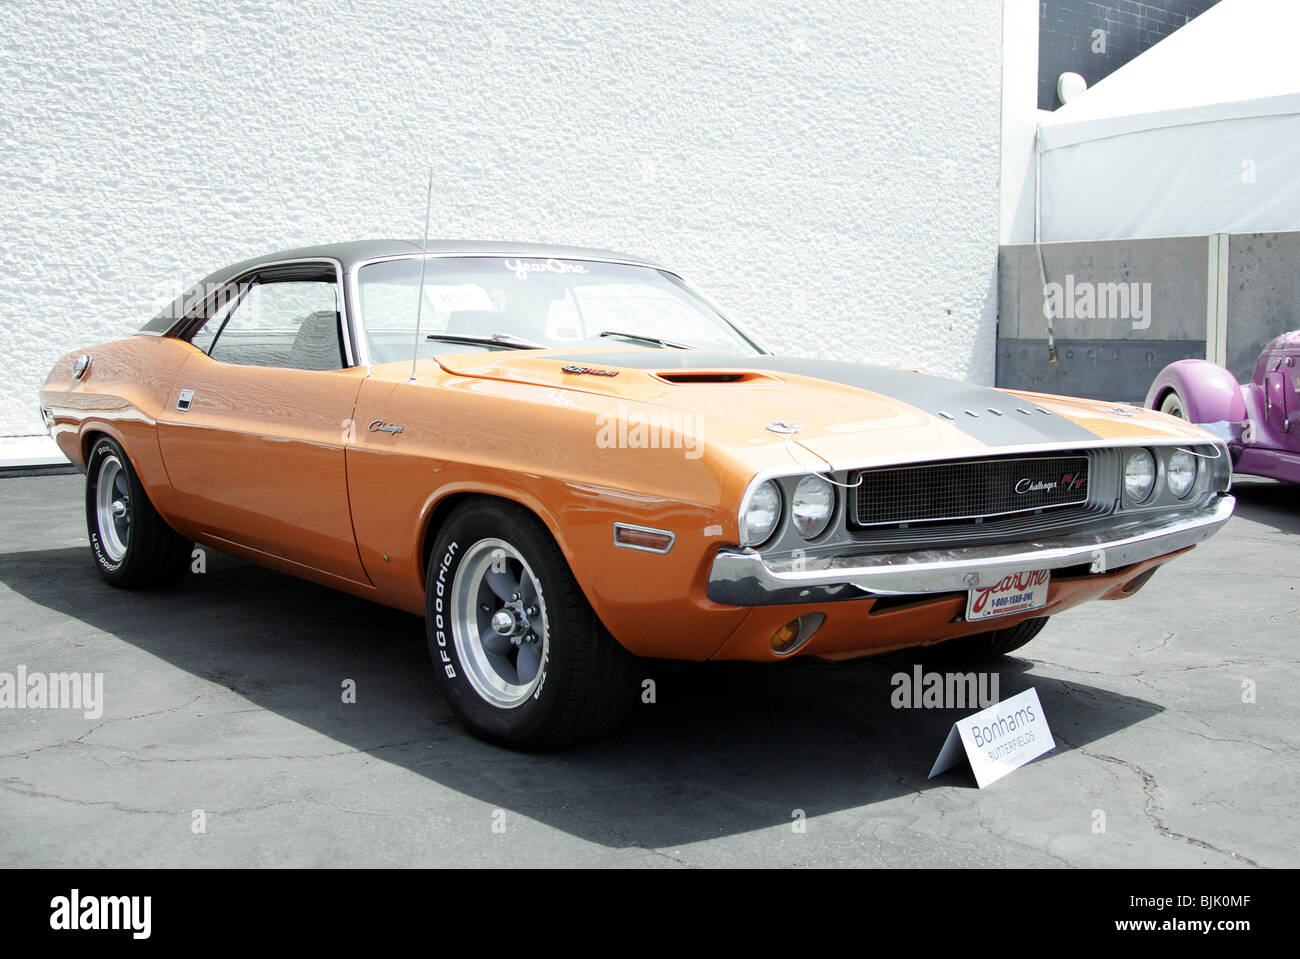 2FAST 2FURIOUS 1970 DODGE CHALLENGER 426 HEMI GEORGE BARRIS COLLECTION OF KU PETERSEN MUSEUM LOS ANGELES USA 13 - Stock Image